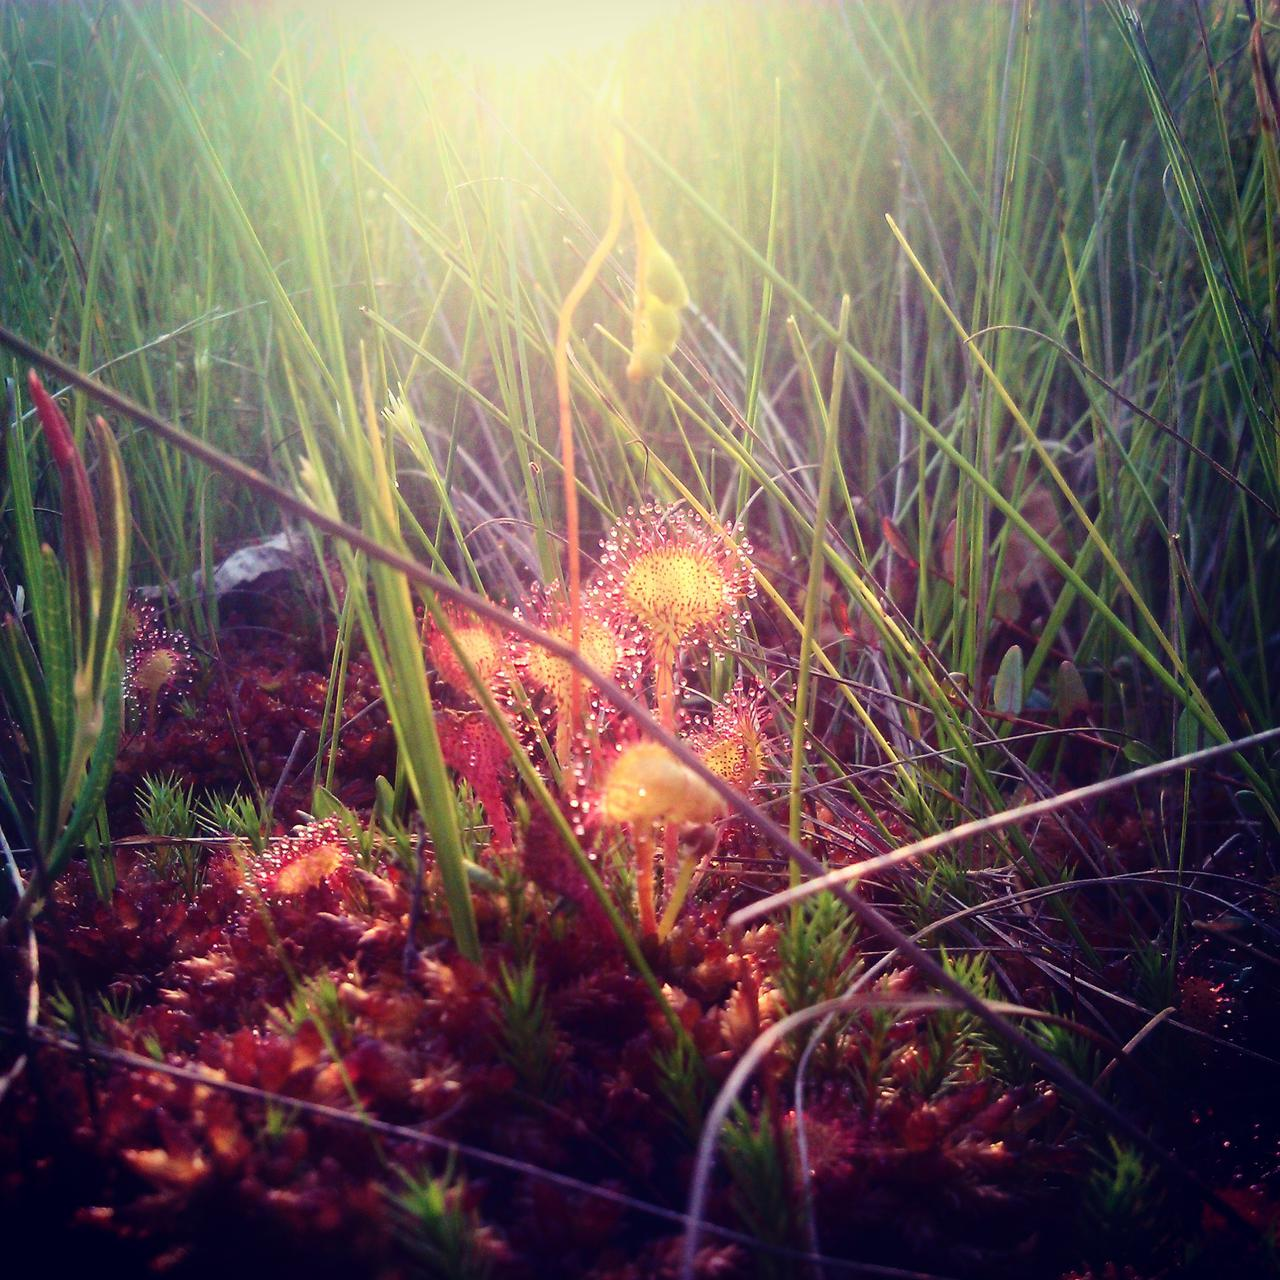 Sundews (Drosera tokaiensis) in Kuresoo bog. Photo Rait Parts